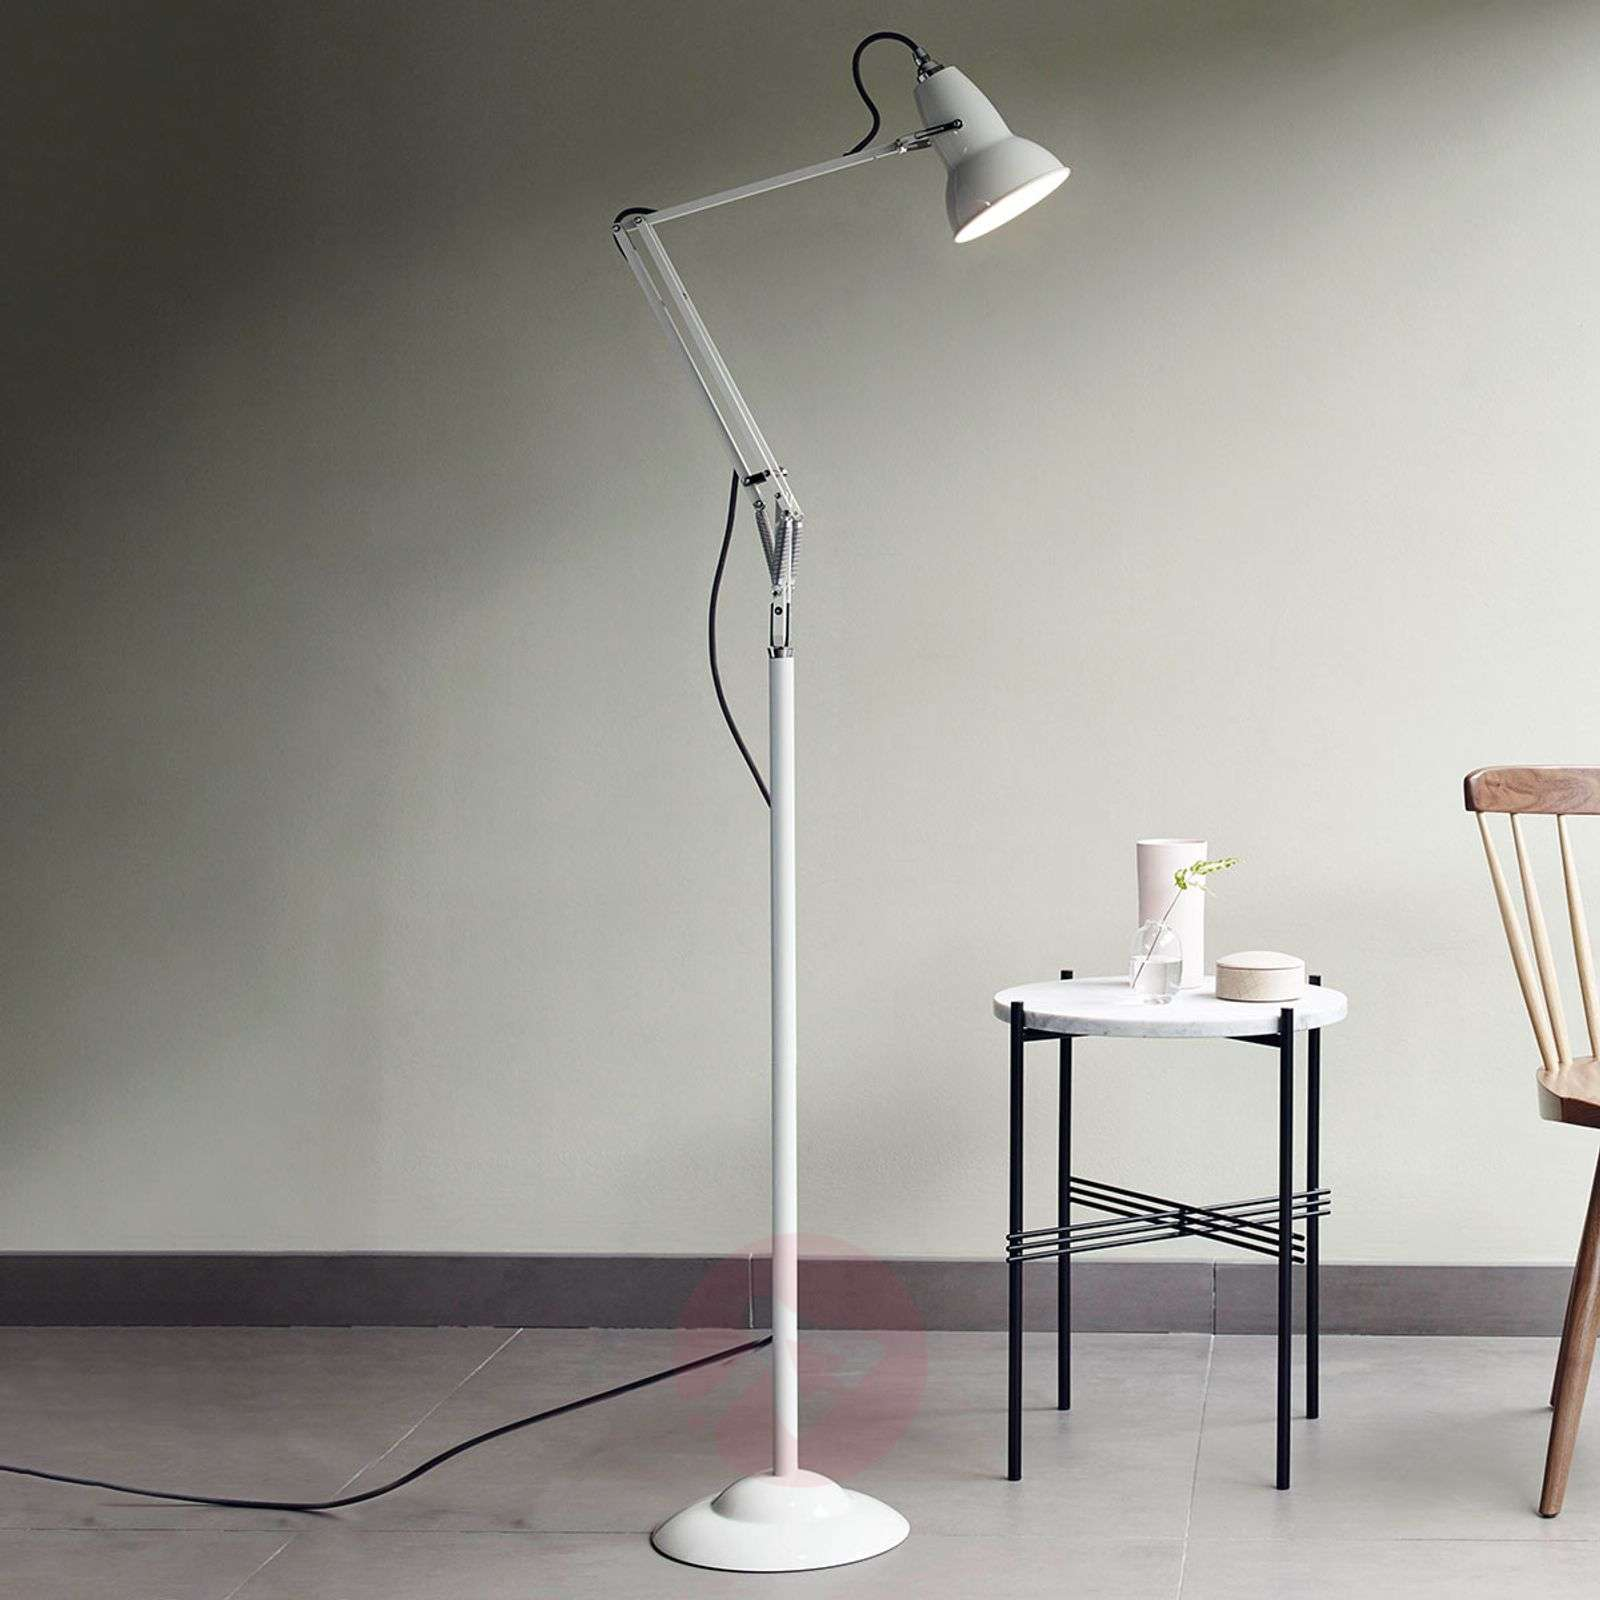 Anglepoise Original 1227 floor lamp-1073070X-01